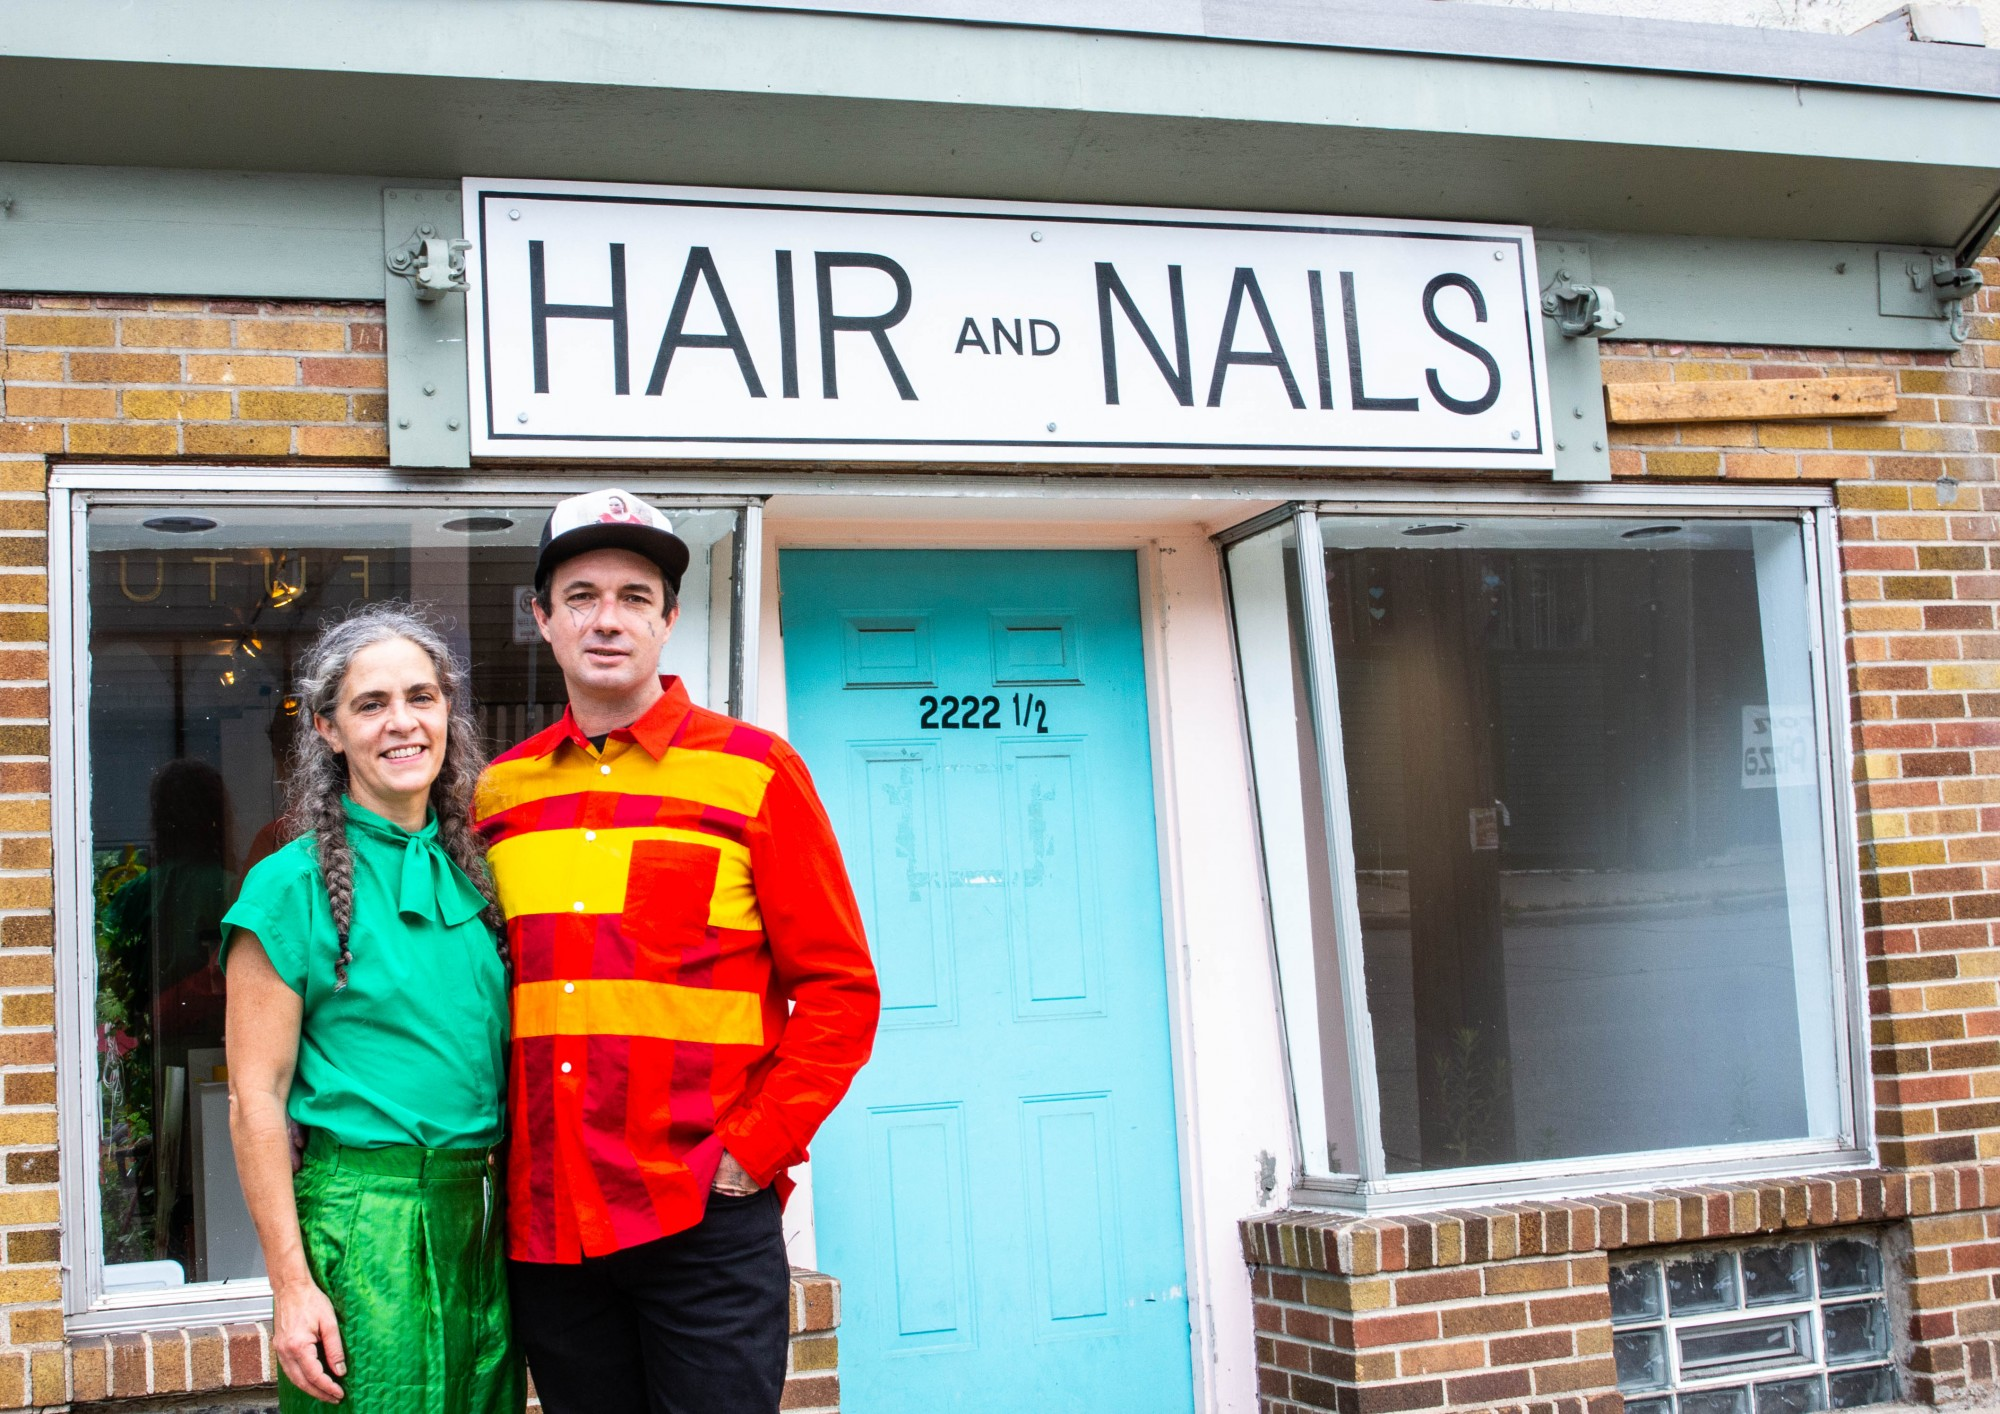 <p>Kristin Van Loon, left, and Ryan Fontaine, owners and operators of Hair + Nails Contemporary Art Gallery, pose for a portrait in front of the gallery in Minneapolis on Monday, July 20. The gallery, located on East 35th St., has a new exhibit about queer love opening on Saturday, July 25.</p>